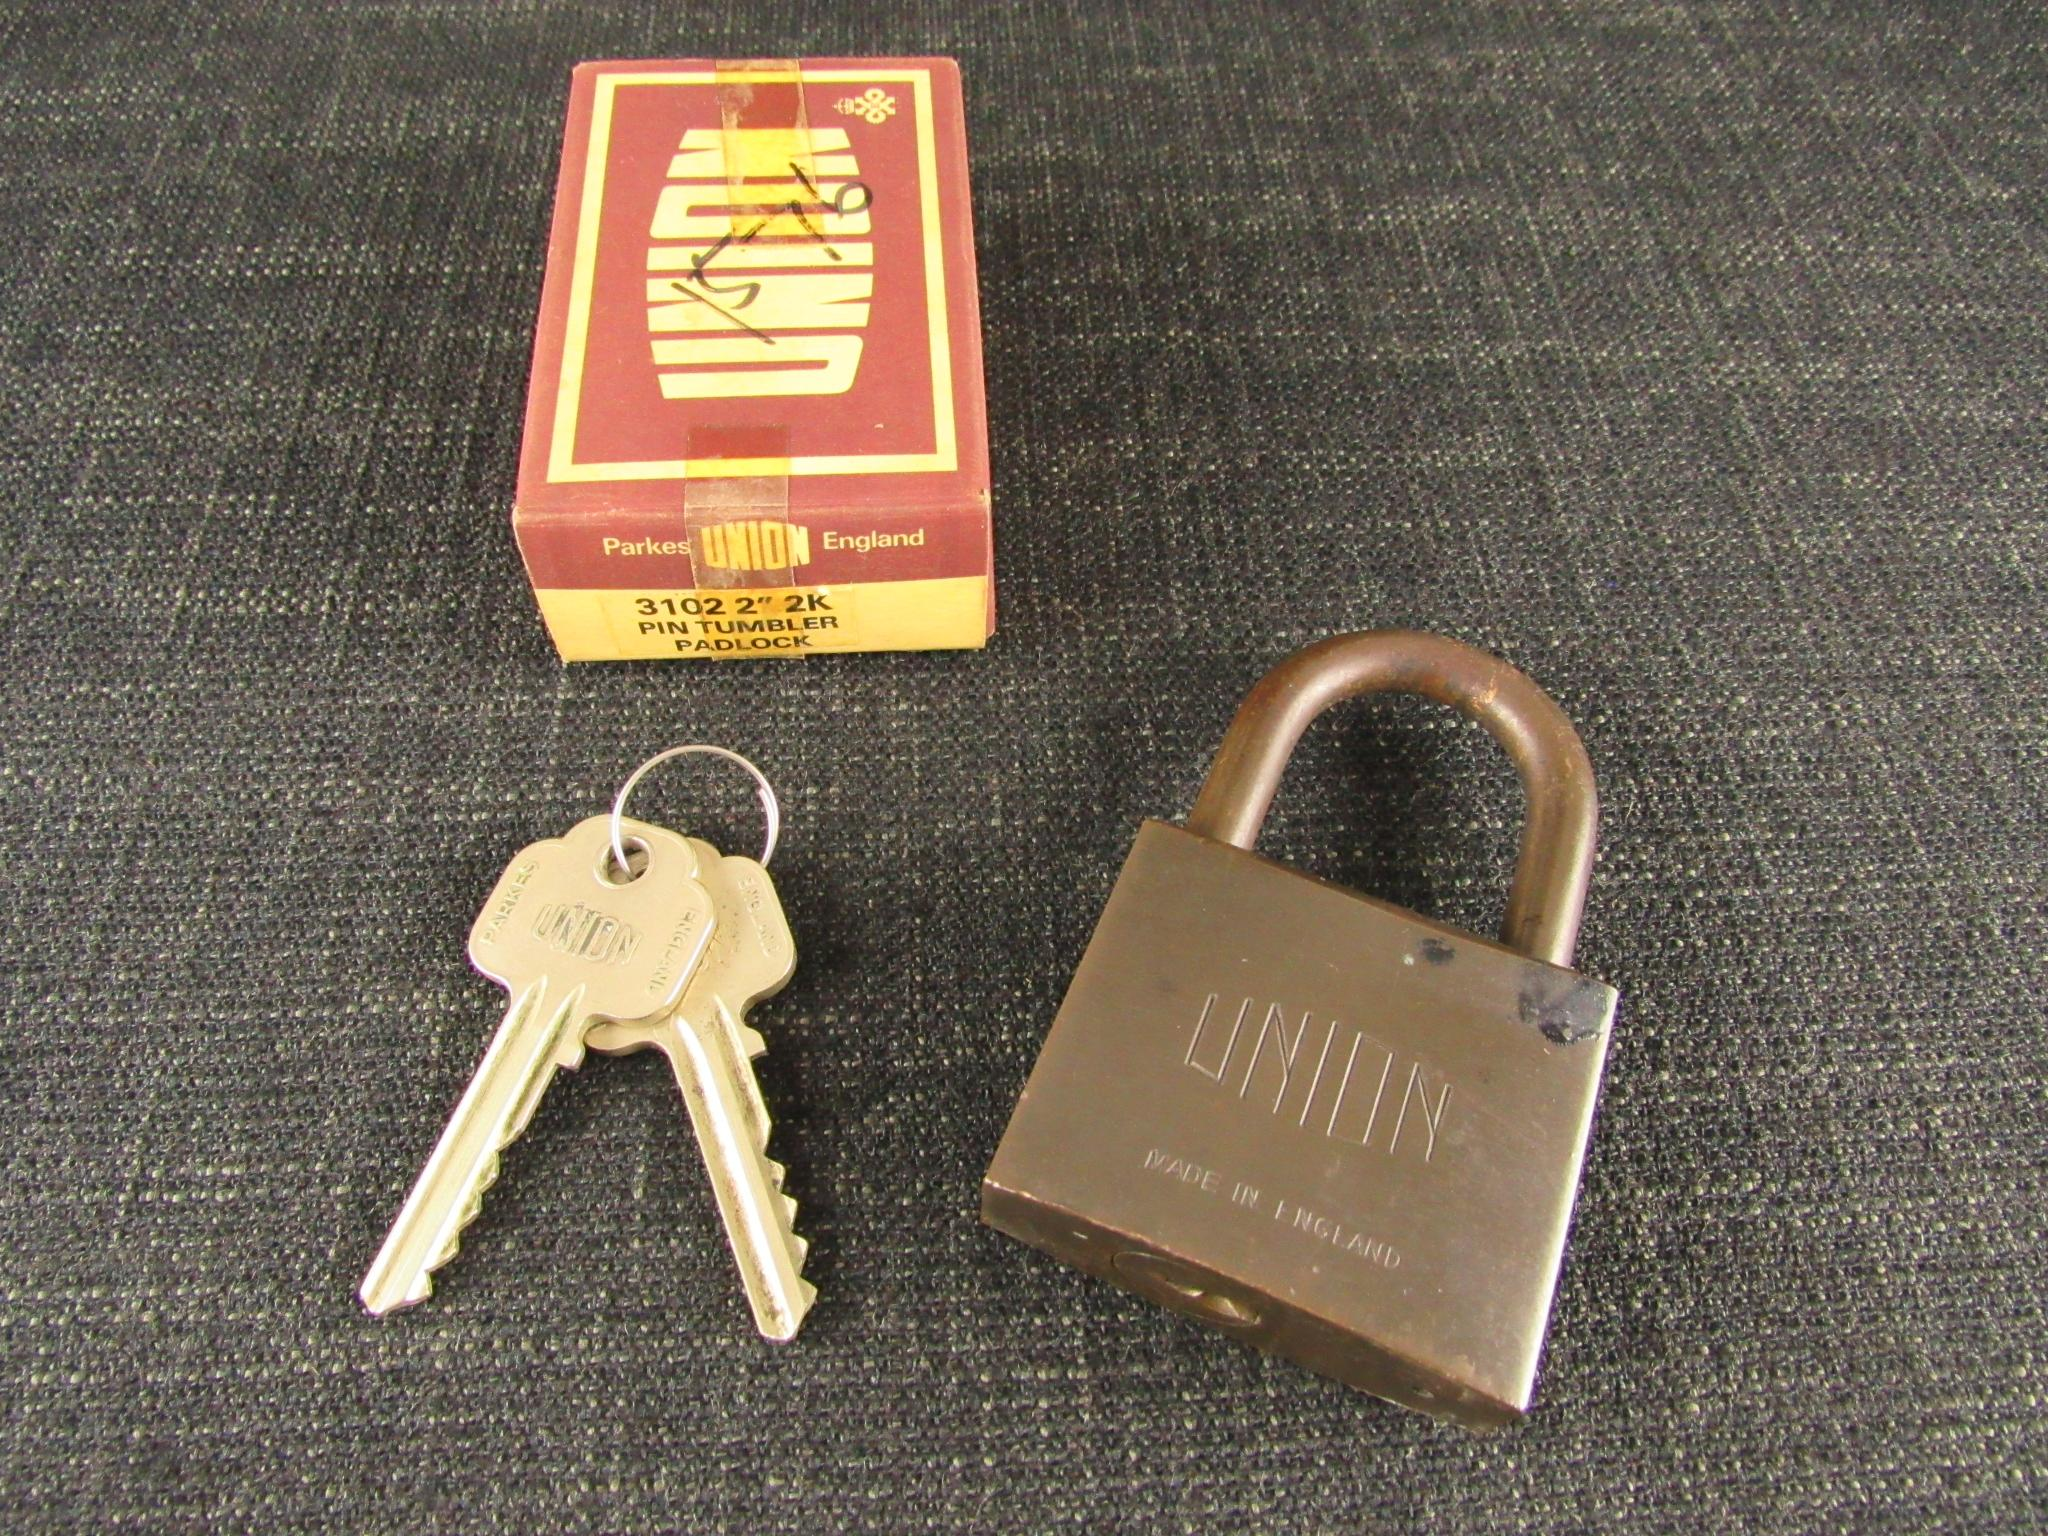 Unused Vintage UNION 3102 Pin Tumbler Padlock - Josiah Parkes & Sons